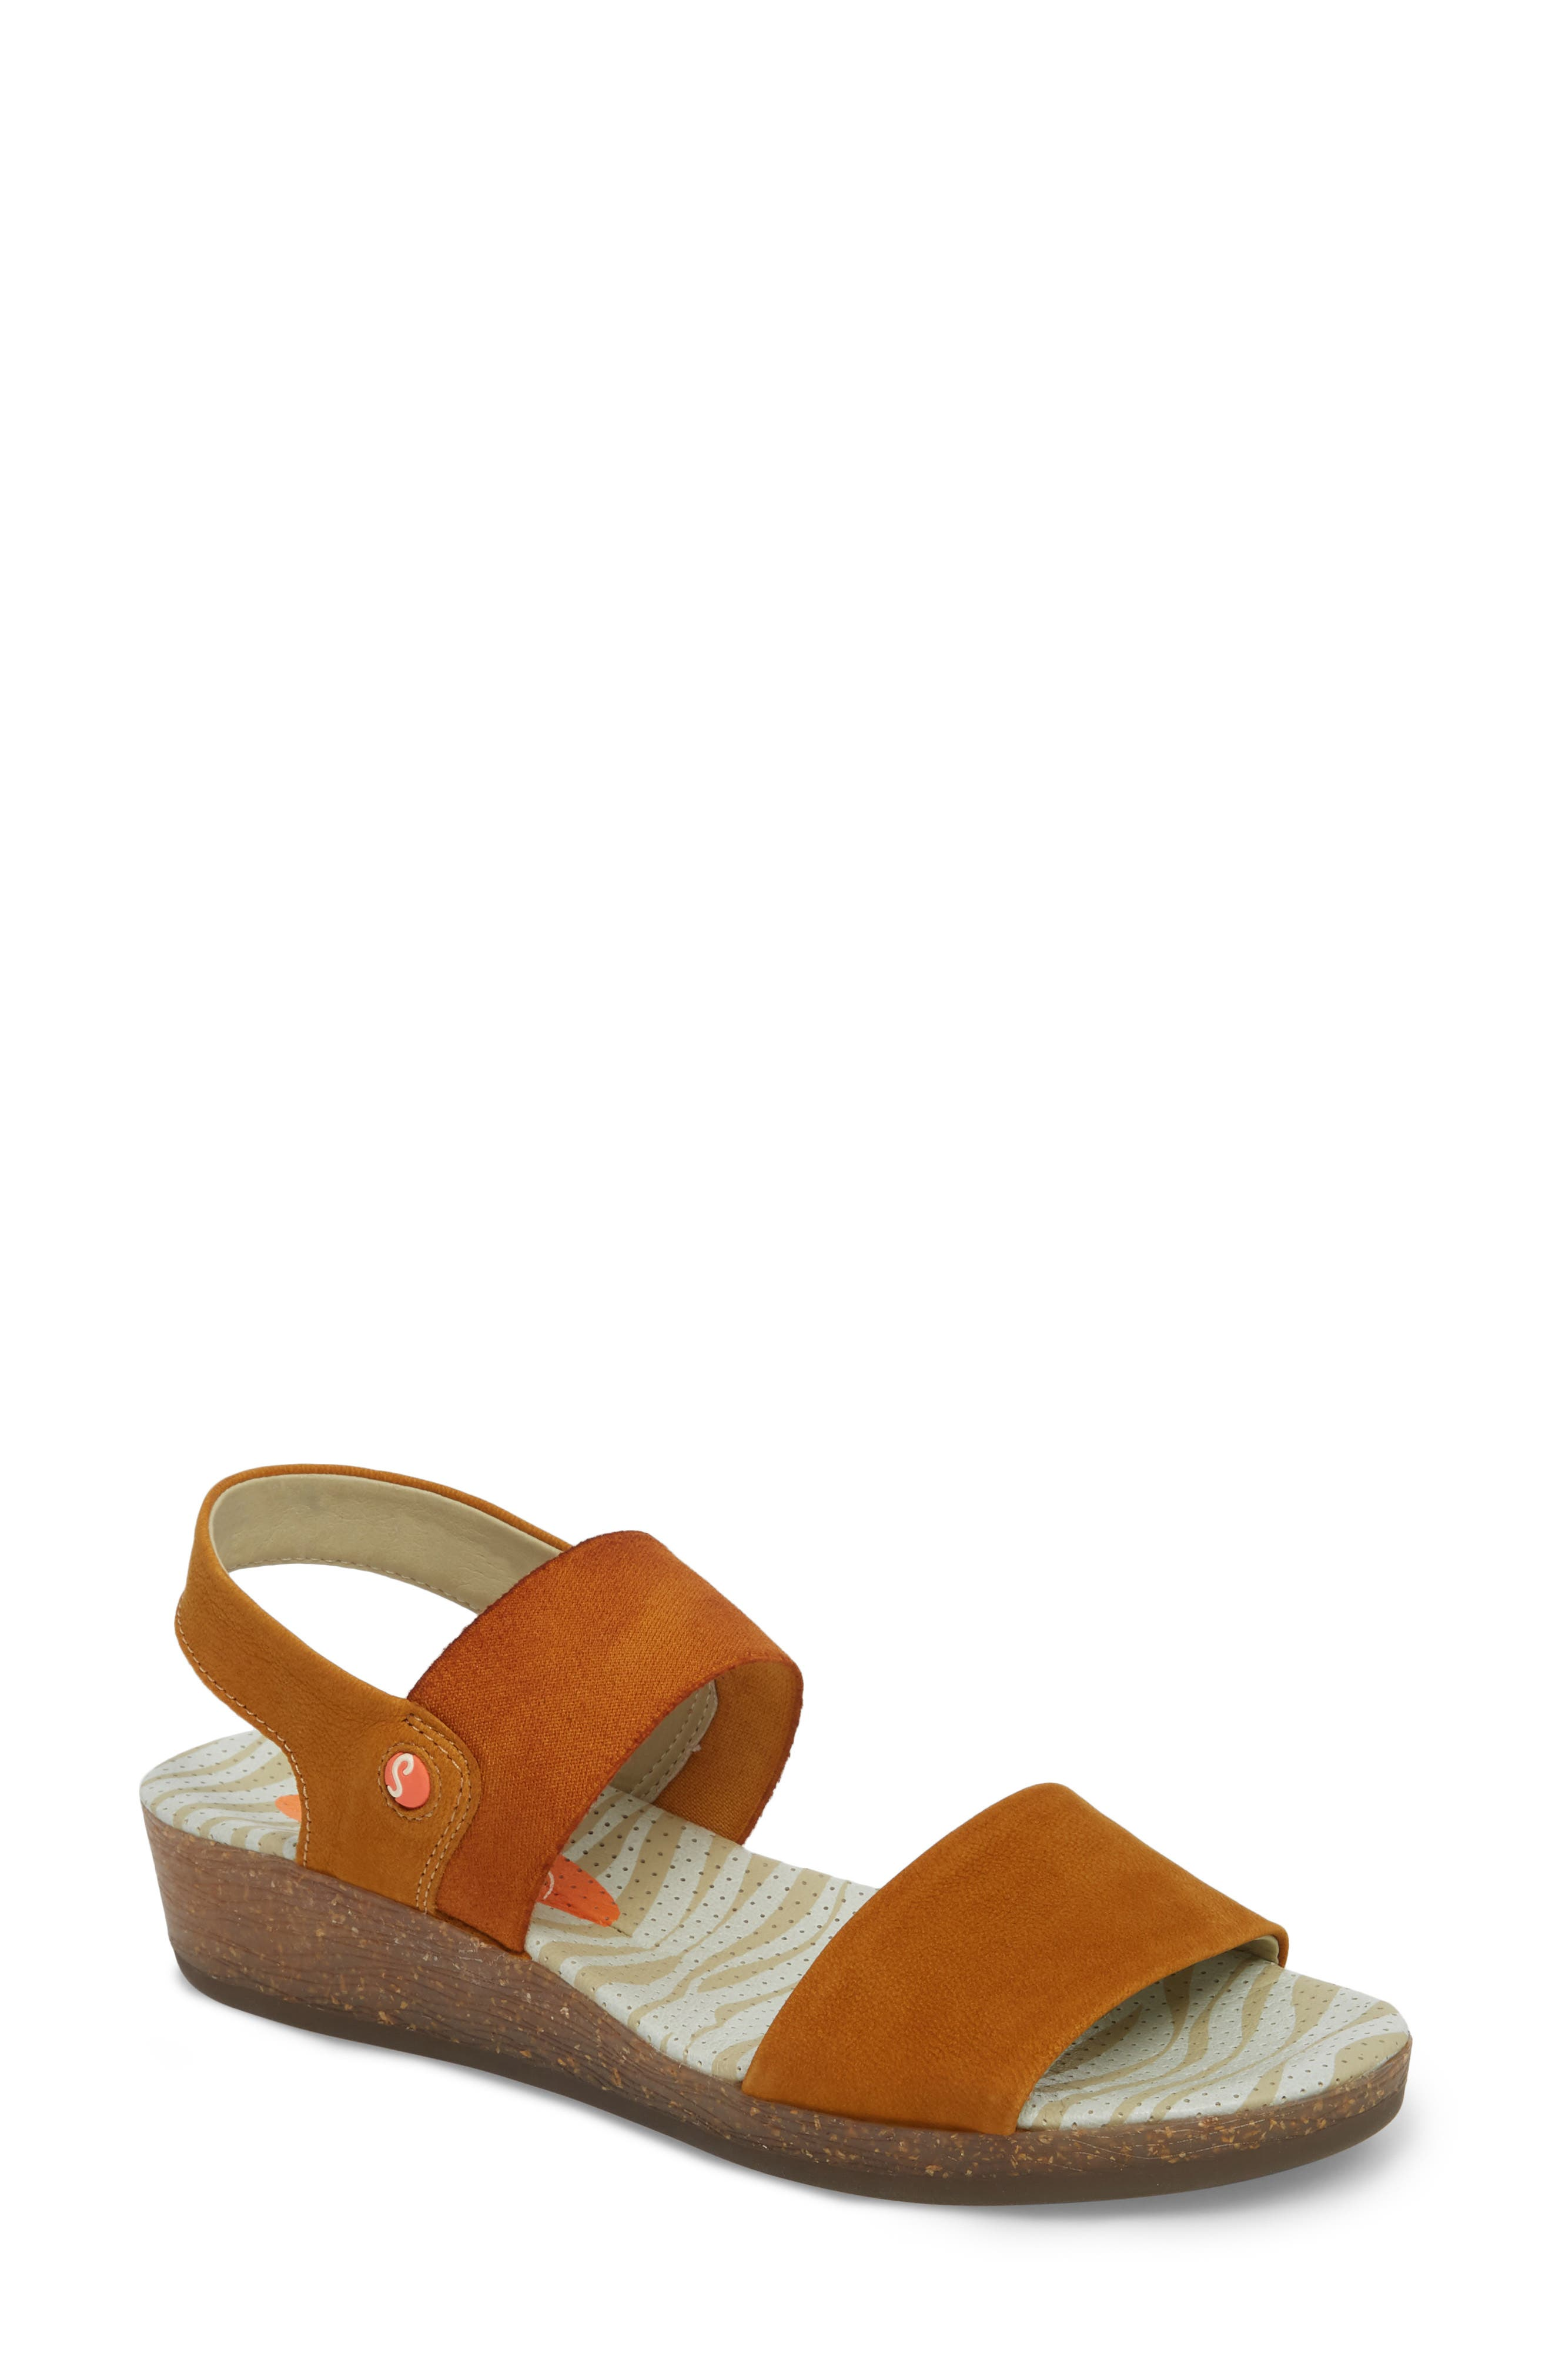 ALP425SOF Sandal,                         Main,                         color, Honey Cupido Leather